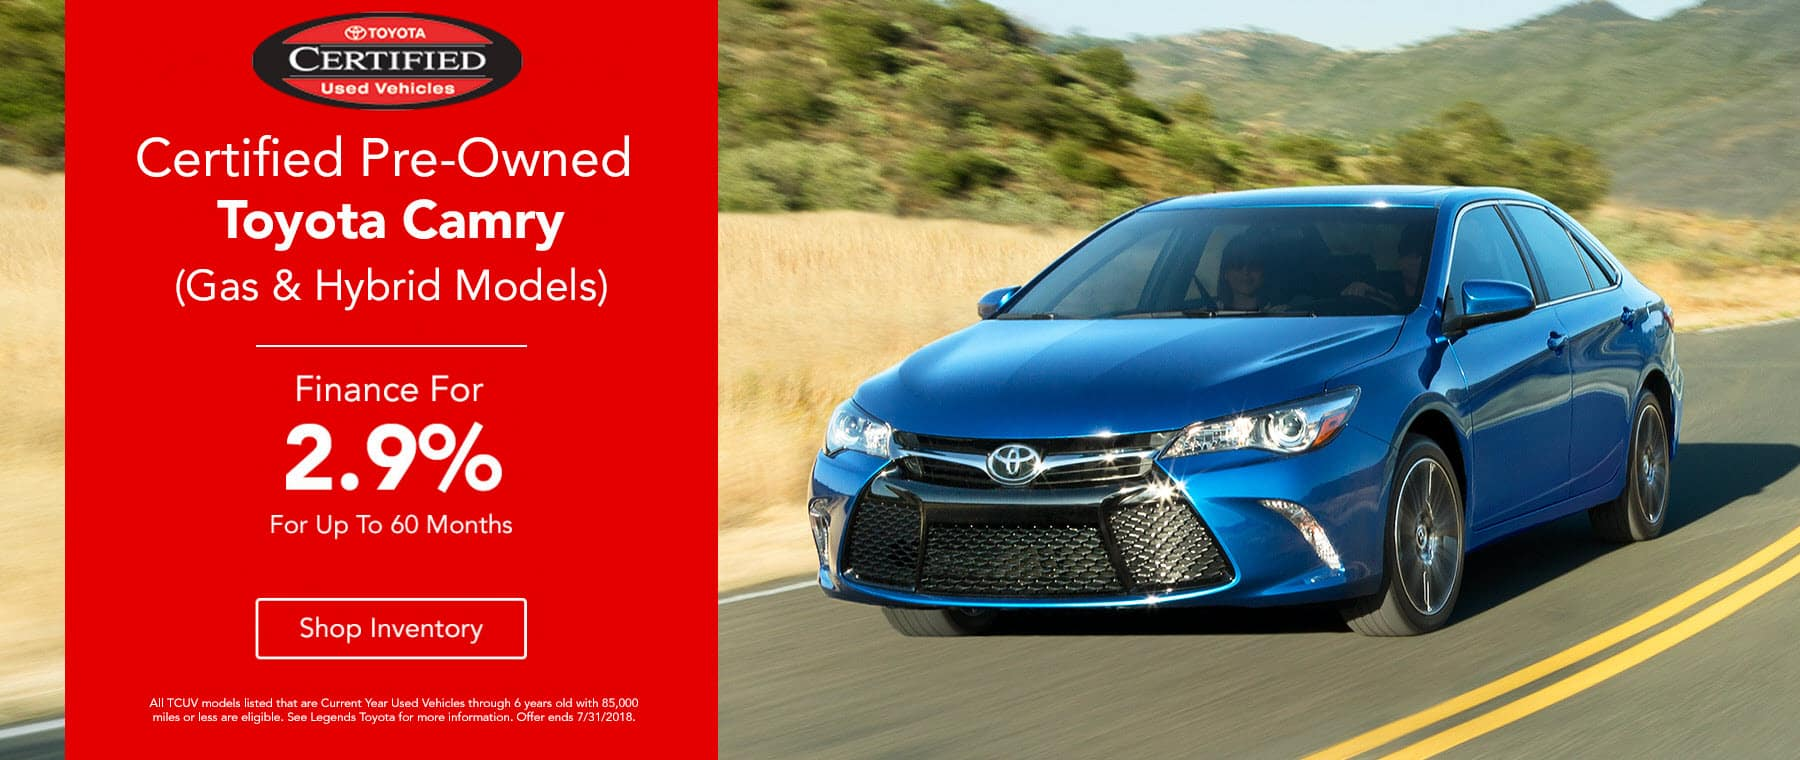 Certified Pre-Owned Camry Finance 2.9% Up To 60 Months